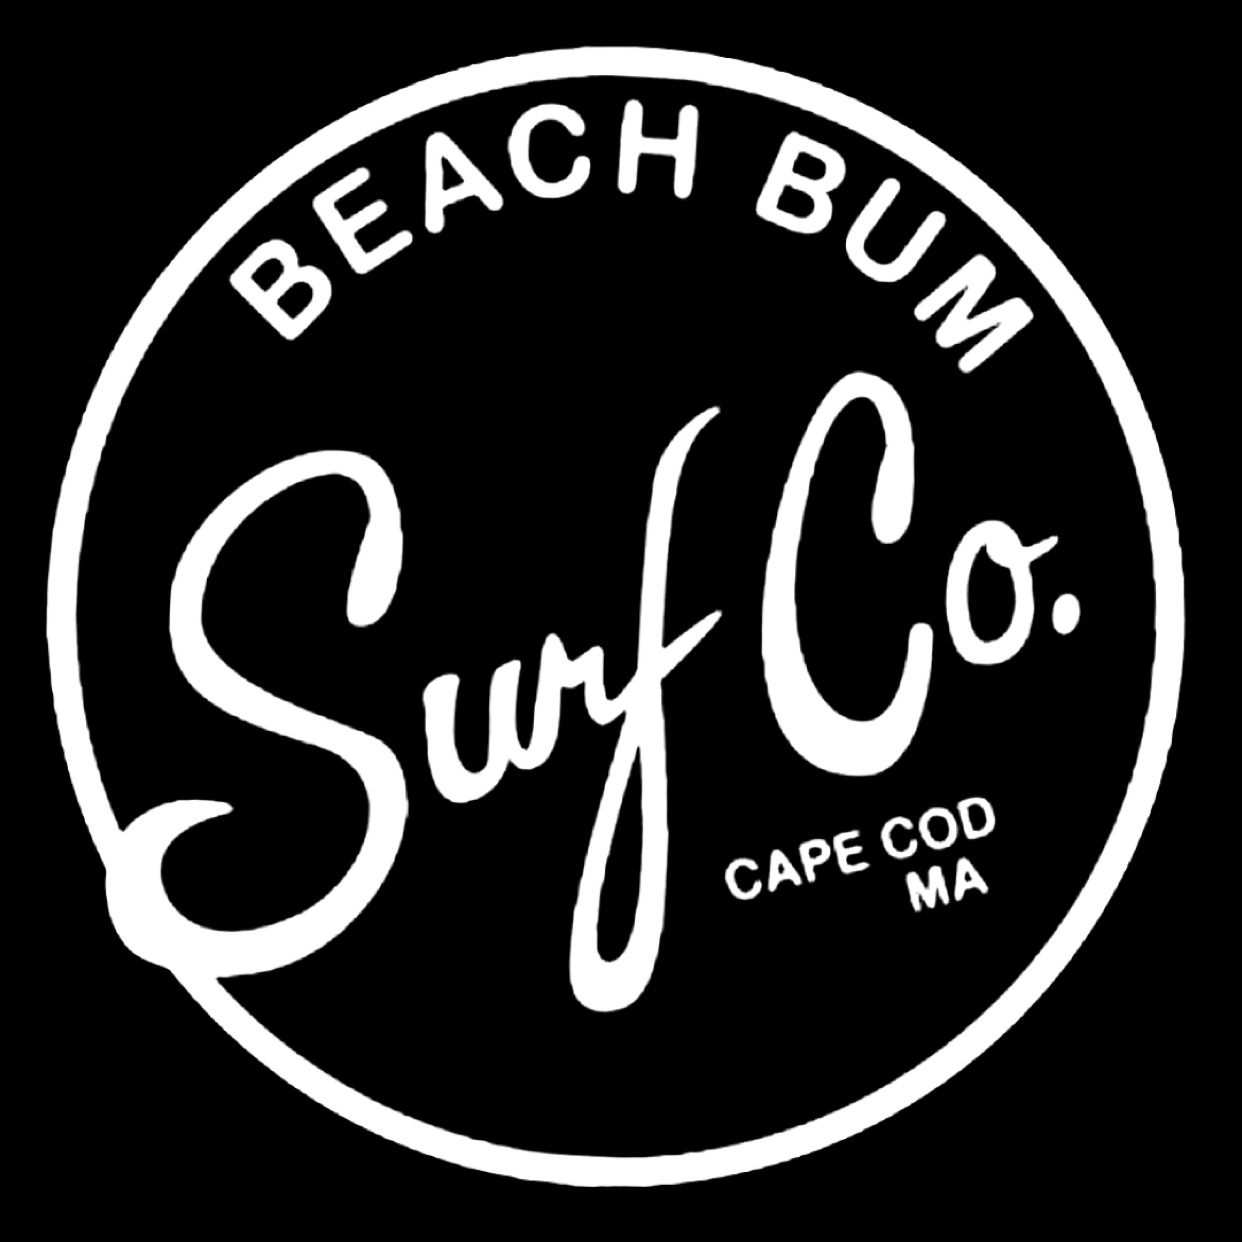 Beach Bum surf co.